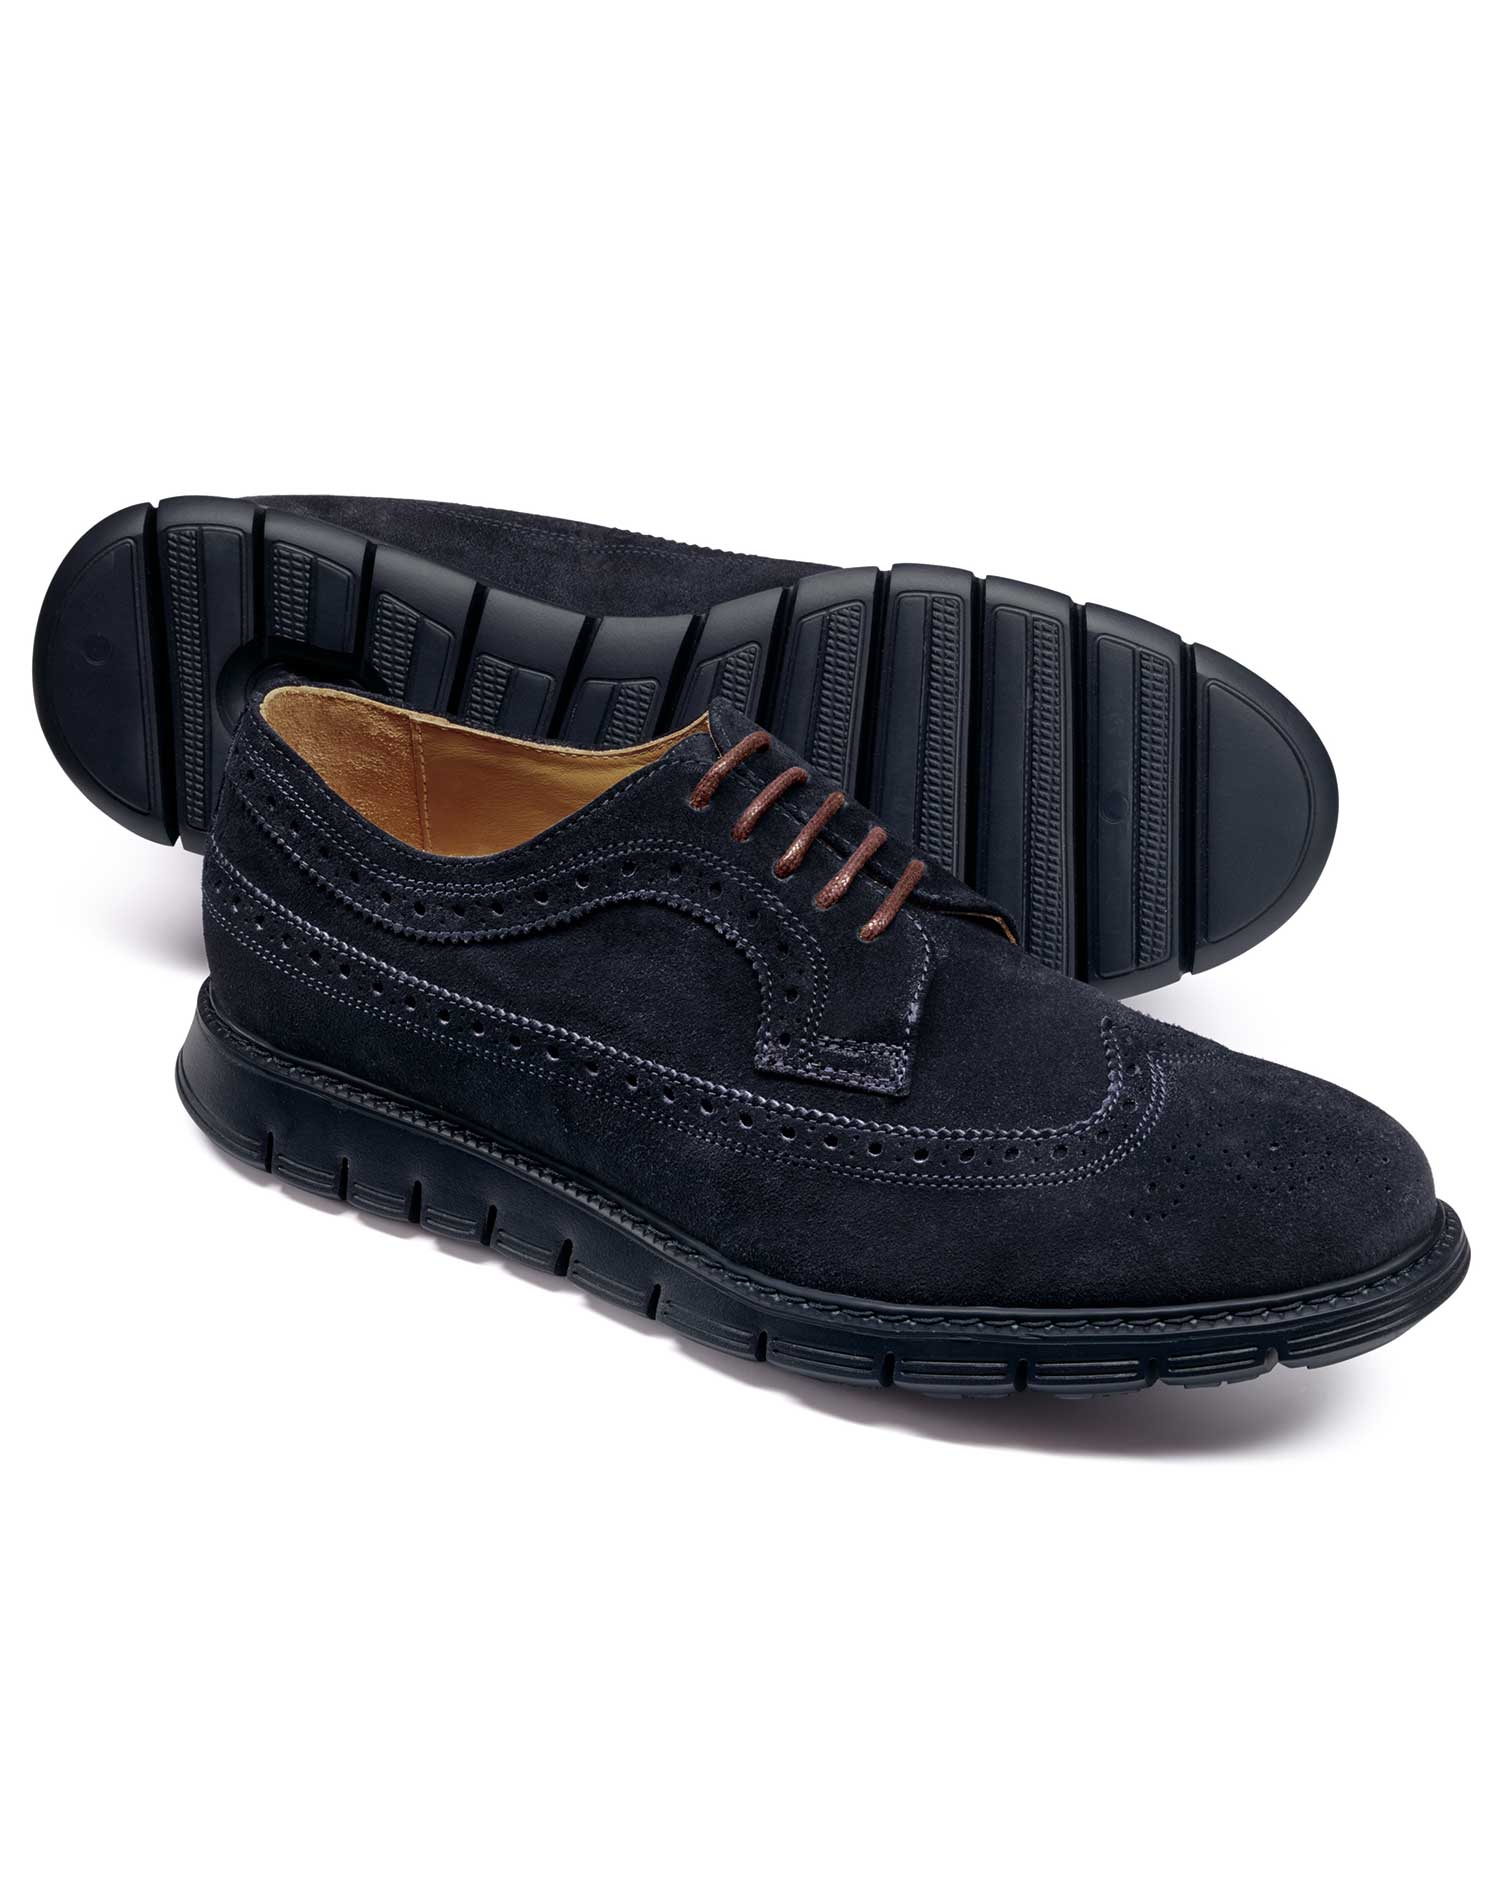 Navy Suede Extra Lightweight Derby Brogue Shoes Size 7 R by Charles Tyrwhitt